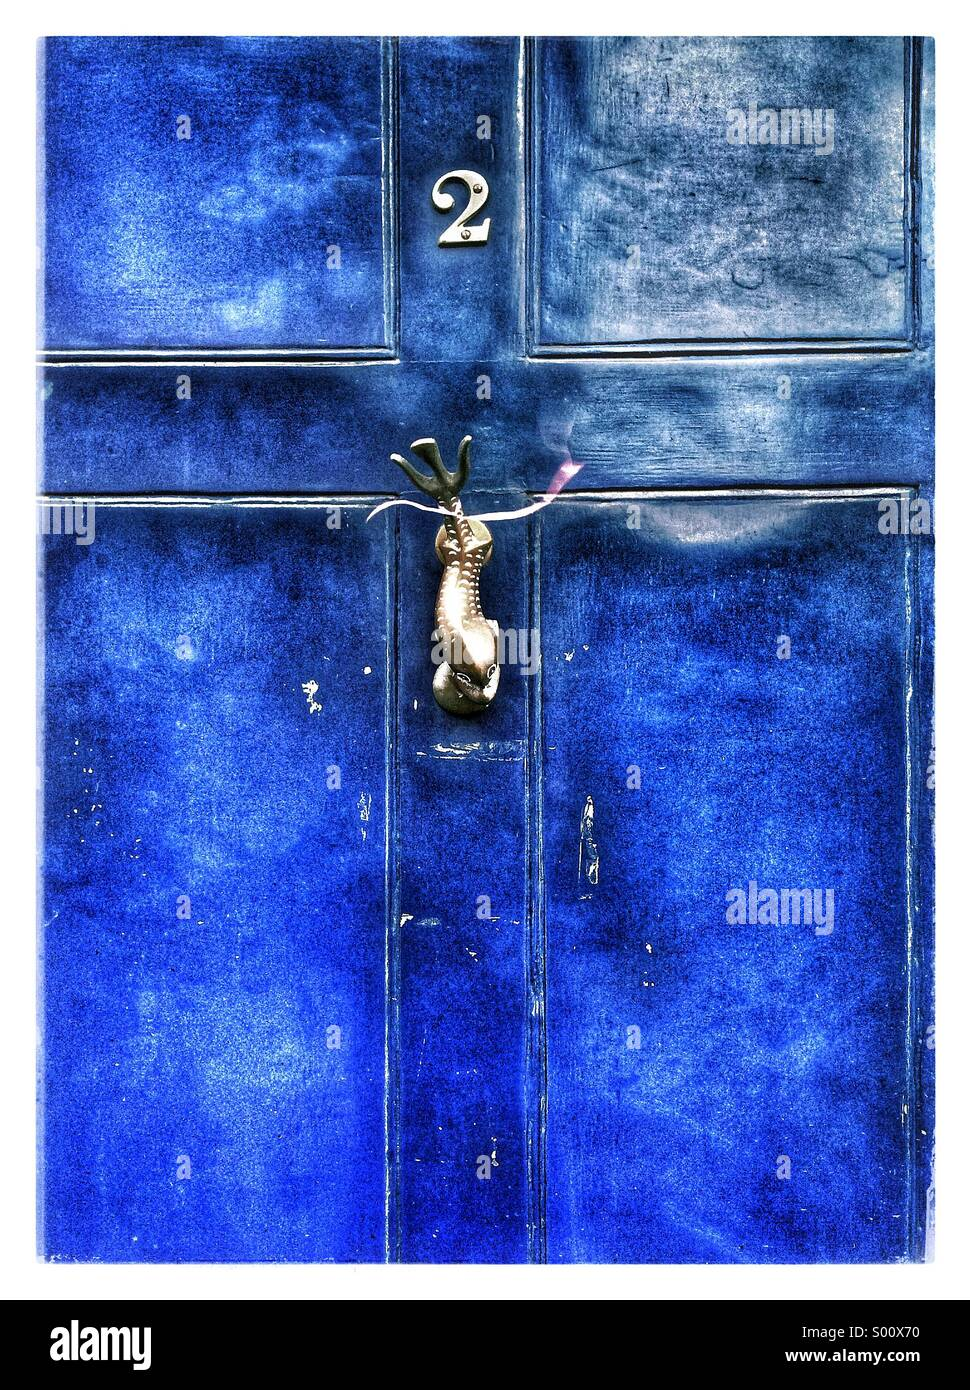 A bright blue colored door with a fish shaped knocker. - Stock Image